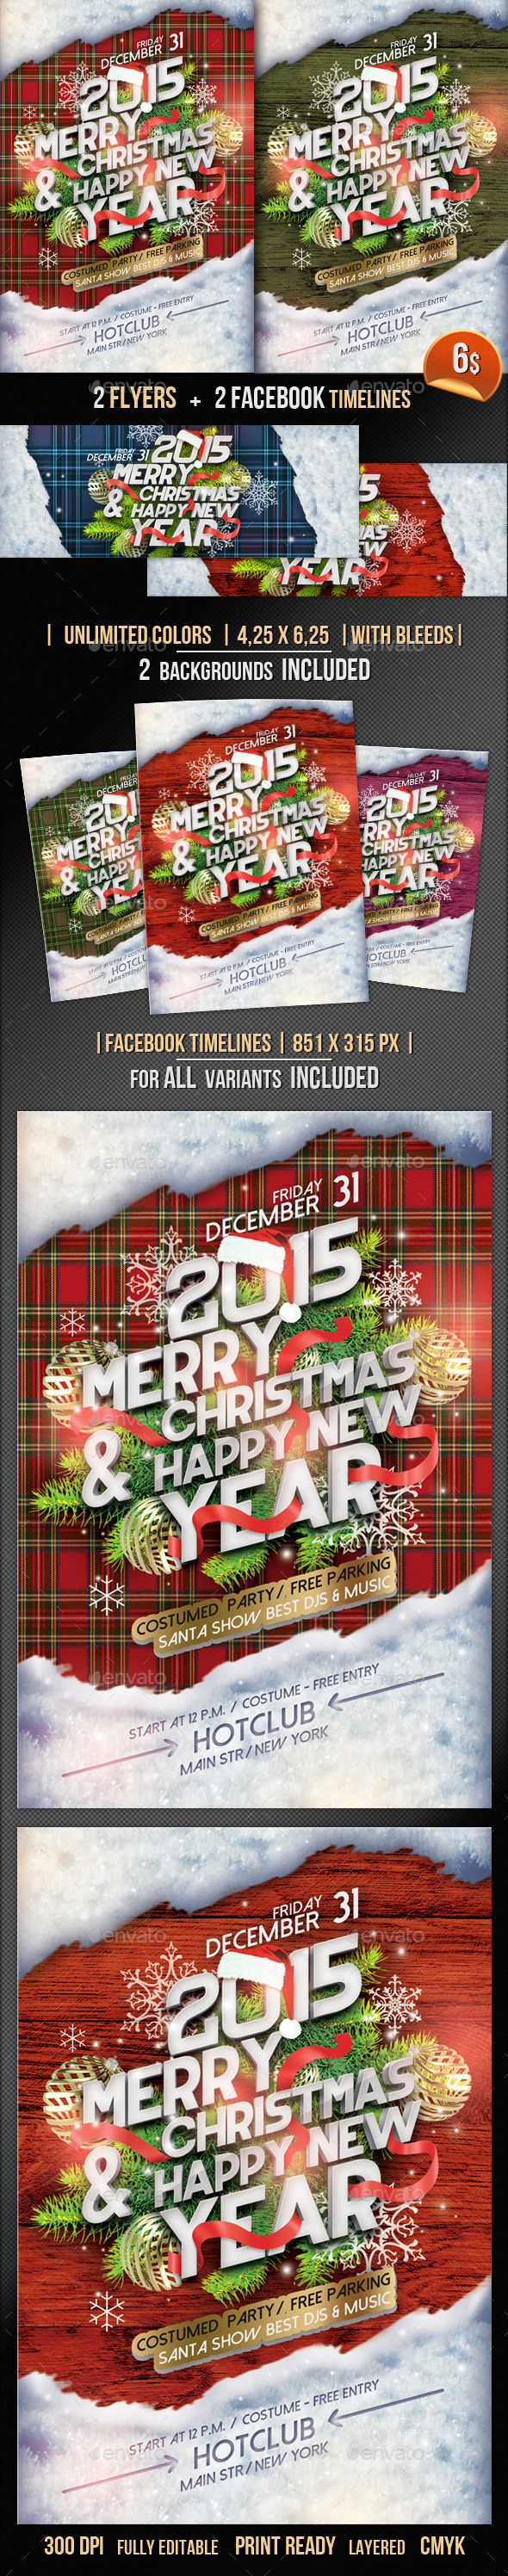 GraphicRiver Christmas Flyer & Fb Timeline 9623170